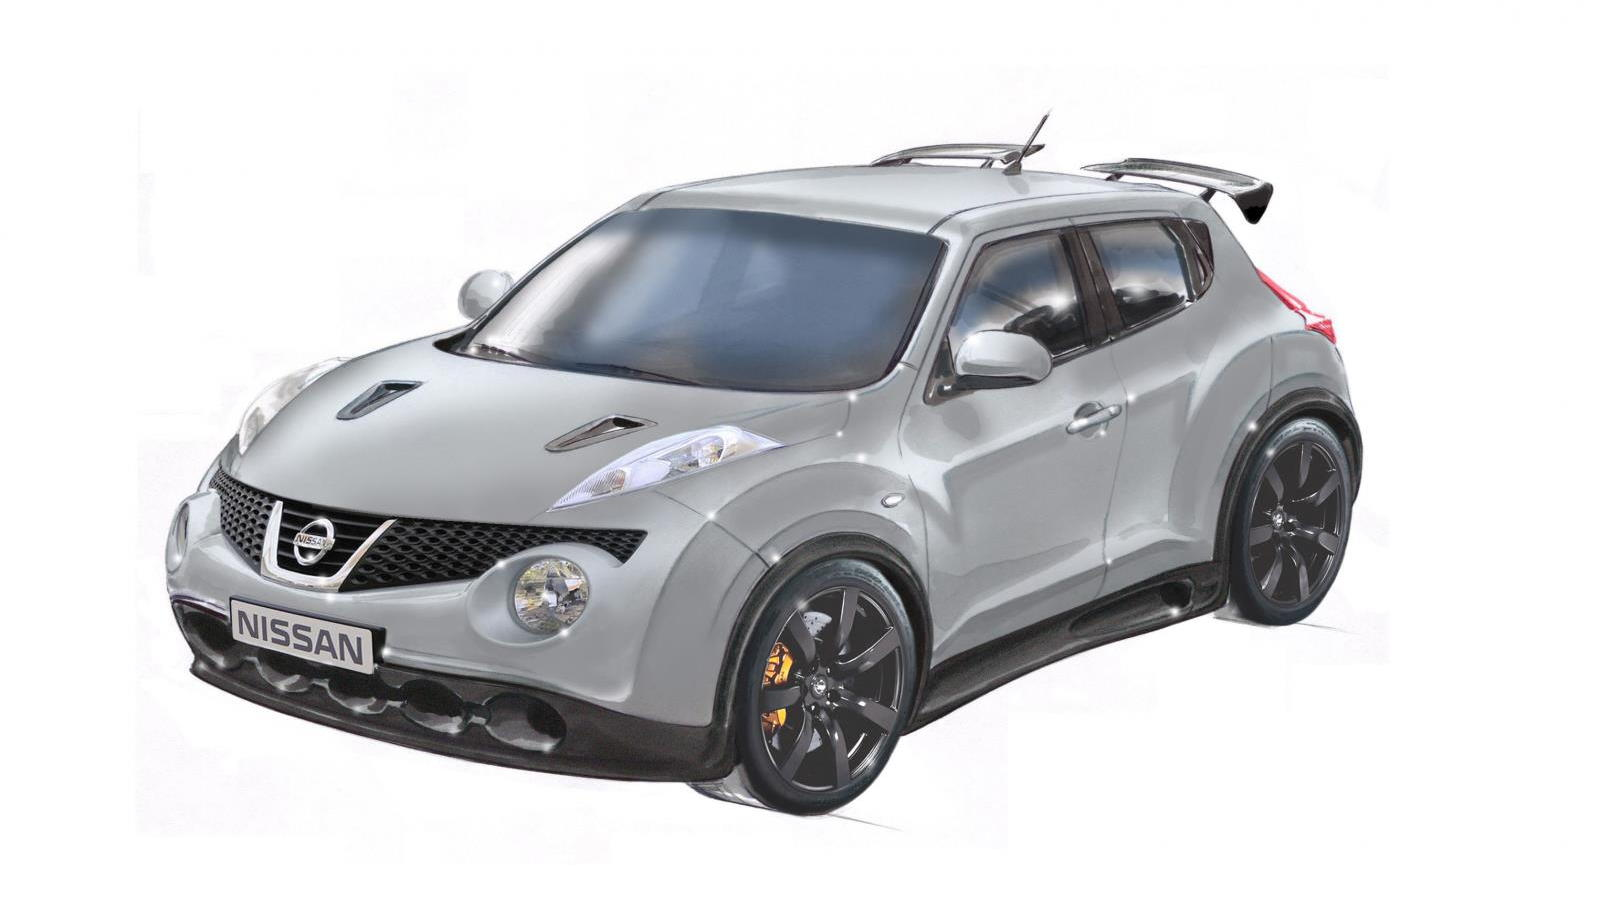 Production Nissan Juke-R sketches